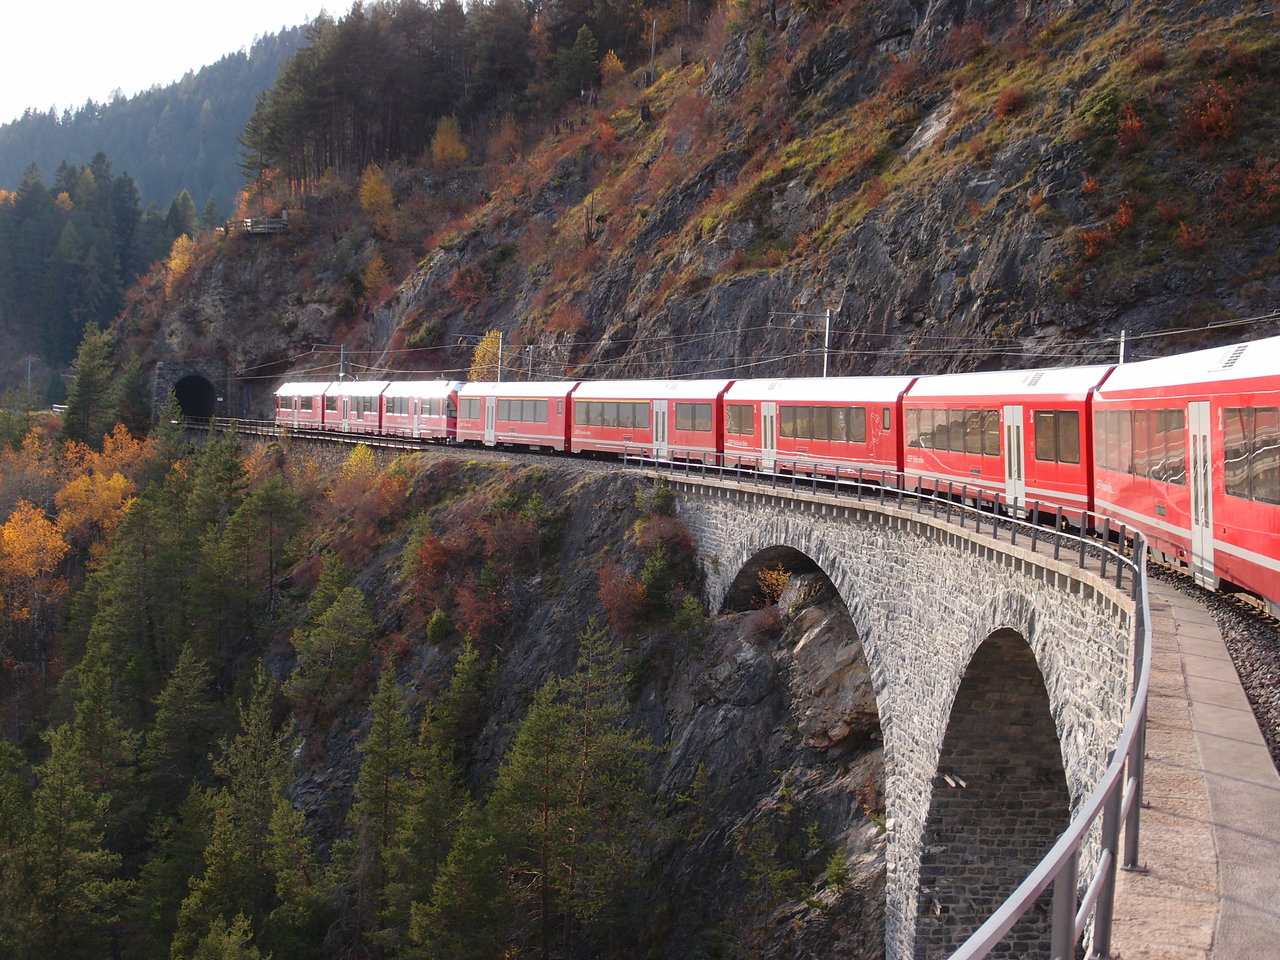 Alvra train on the Landwasser Viaduct